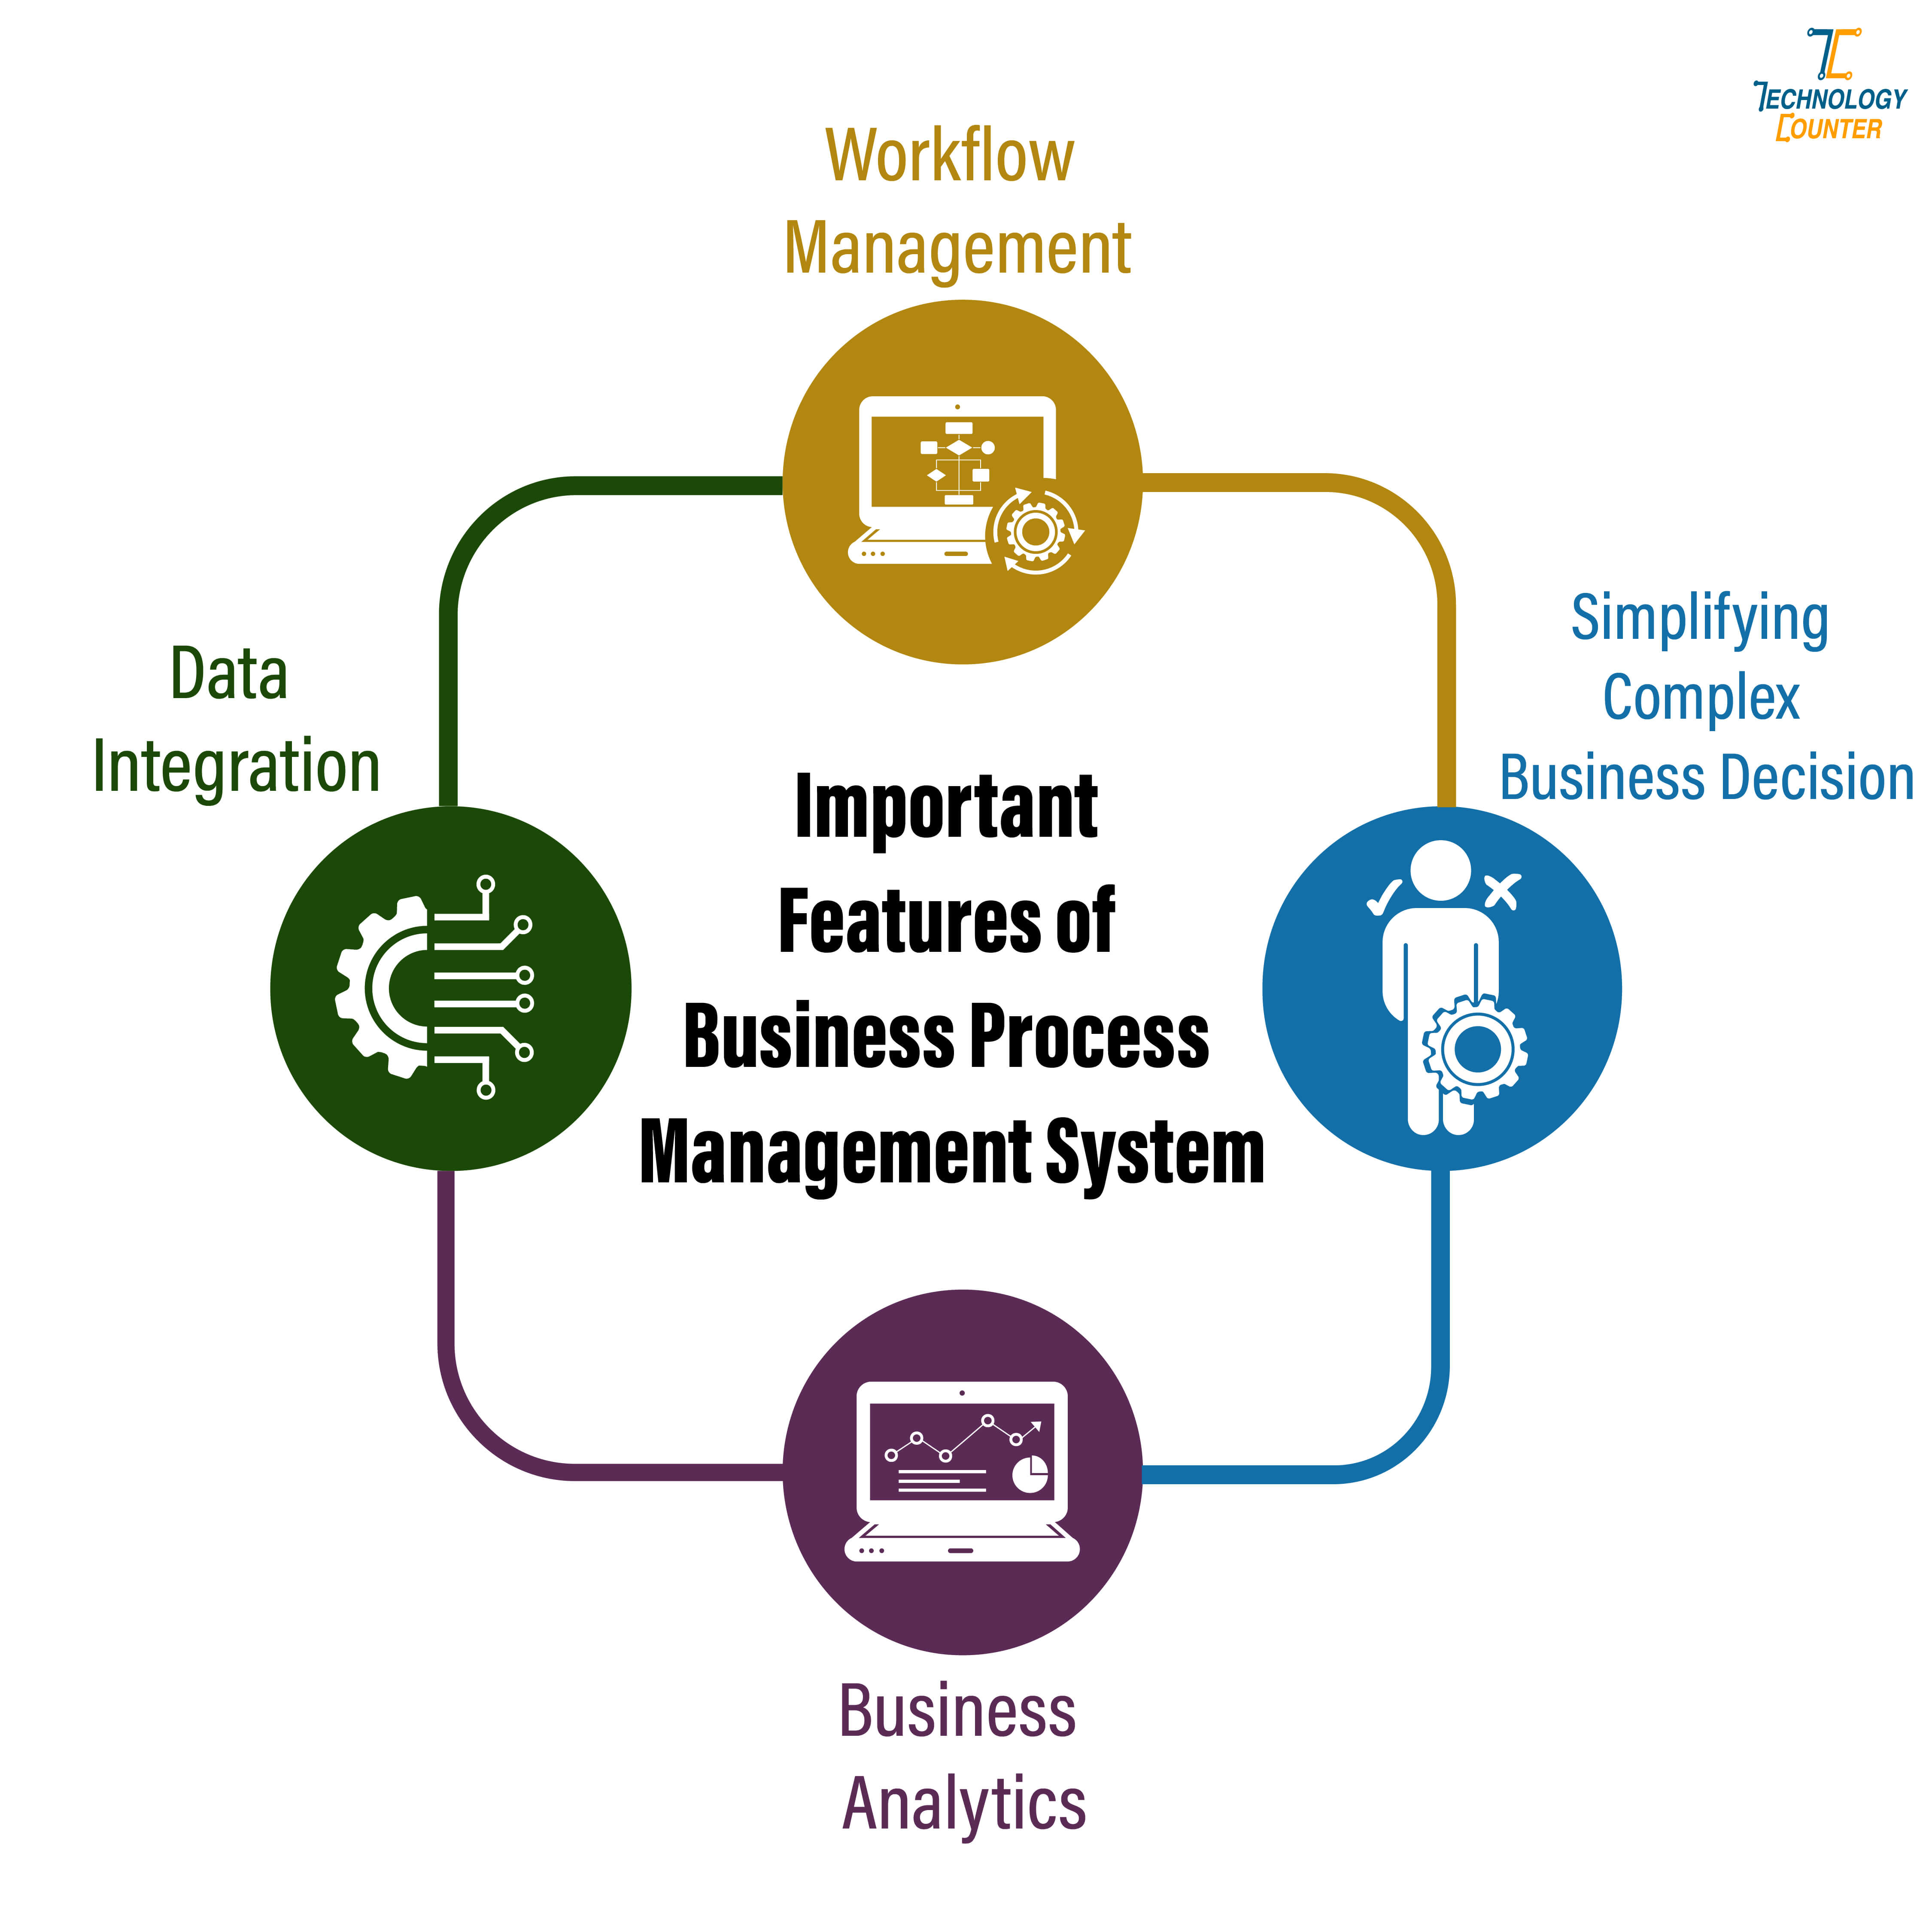 Important Features of Business Process Management System